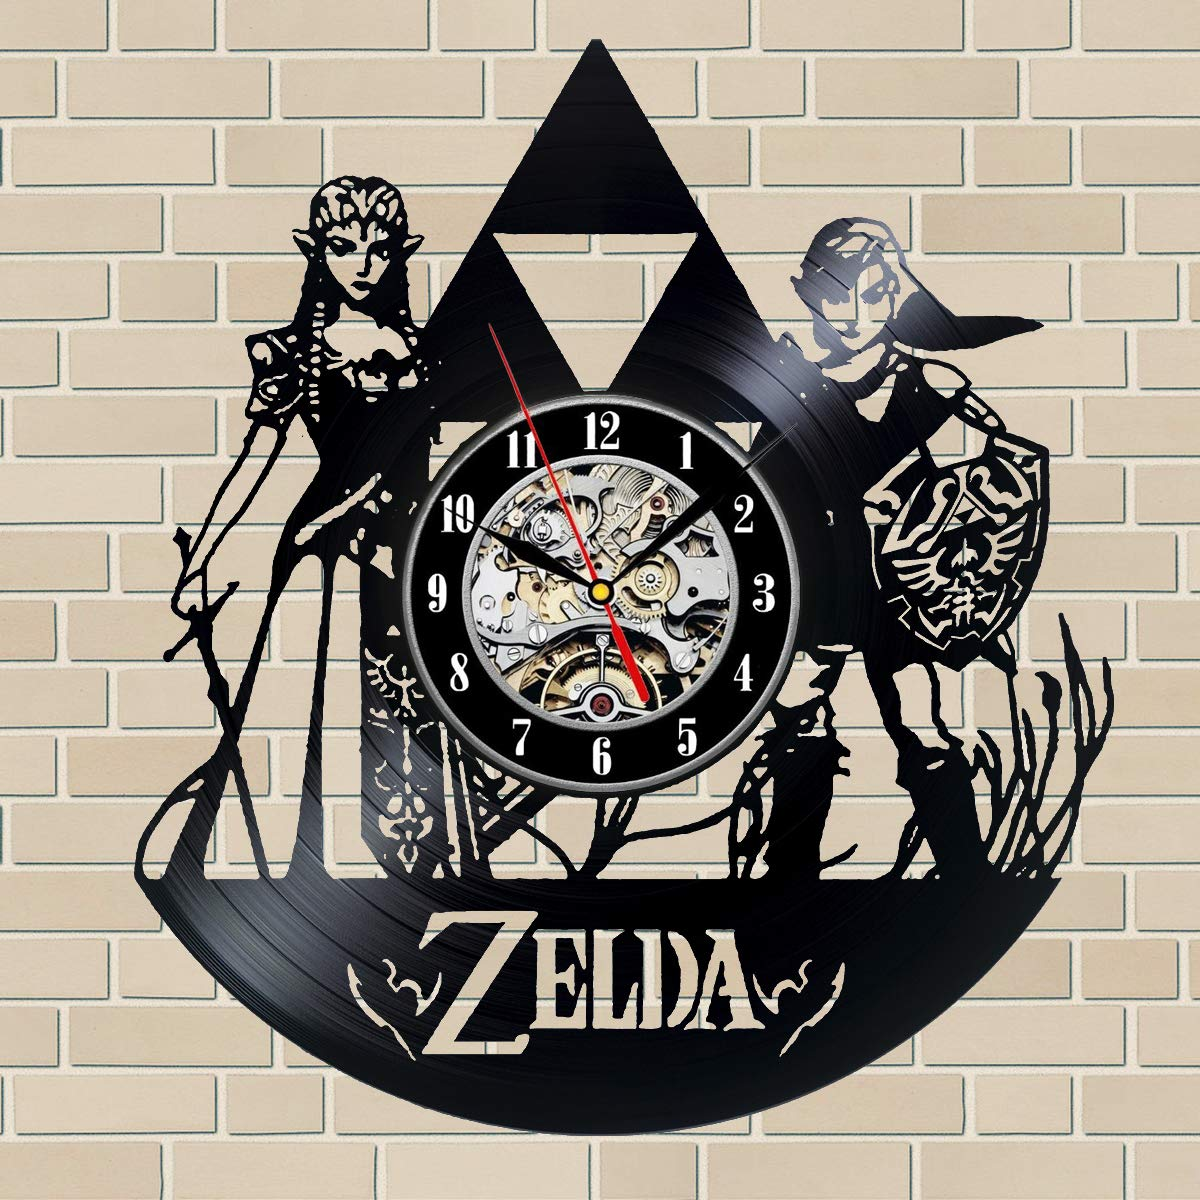 The Legend of Zelda Video Game Series Vinyl Record Wall Clock Decor for Home Best Gift for Any Events Gift for Him Gift for Her